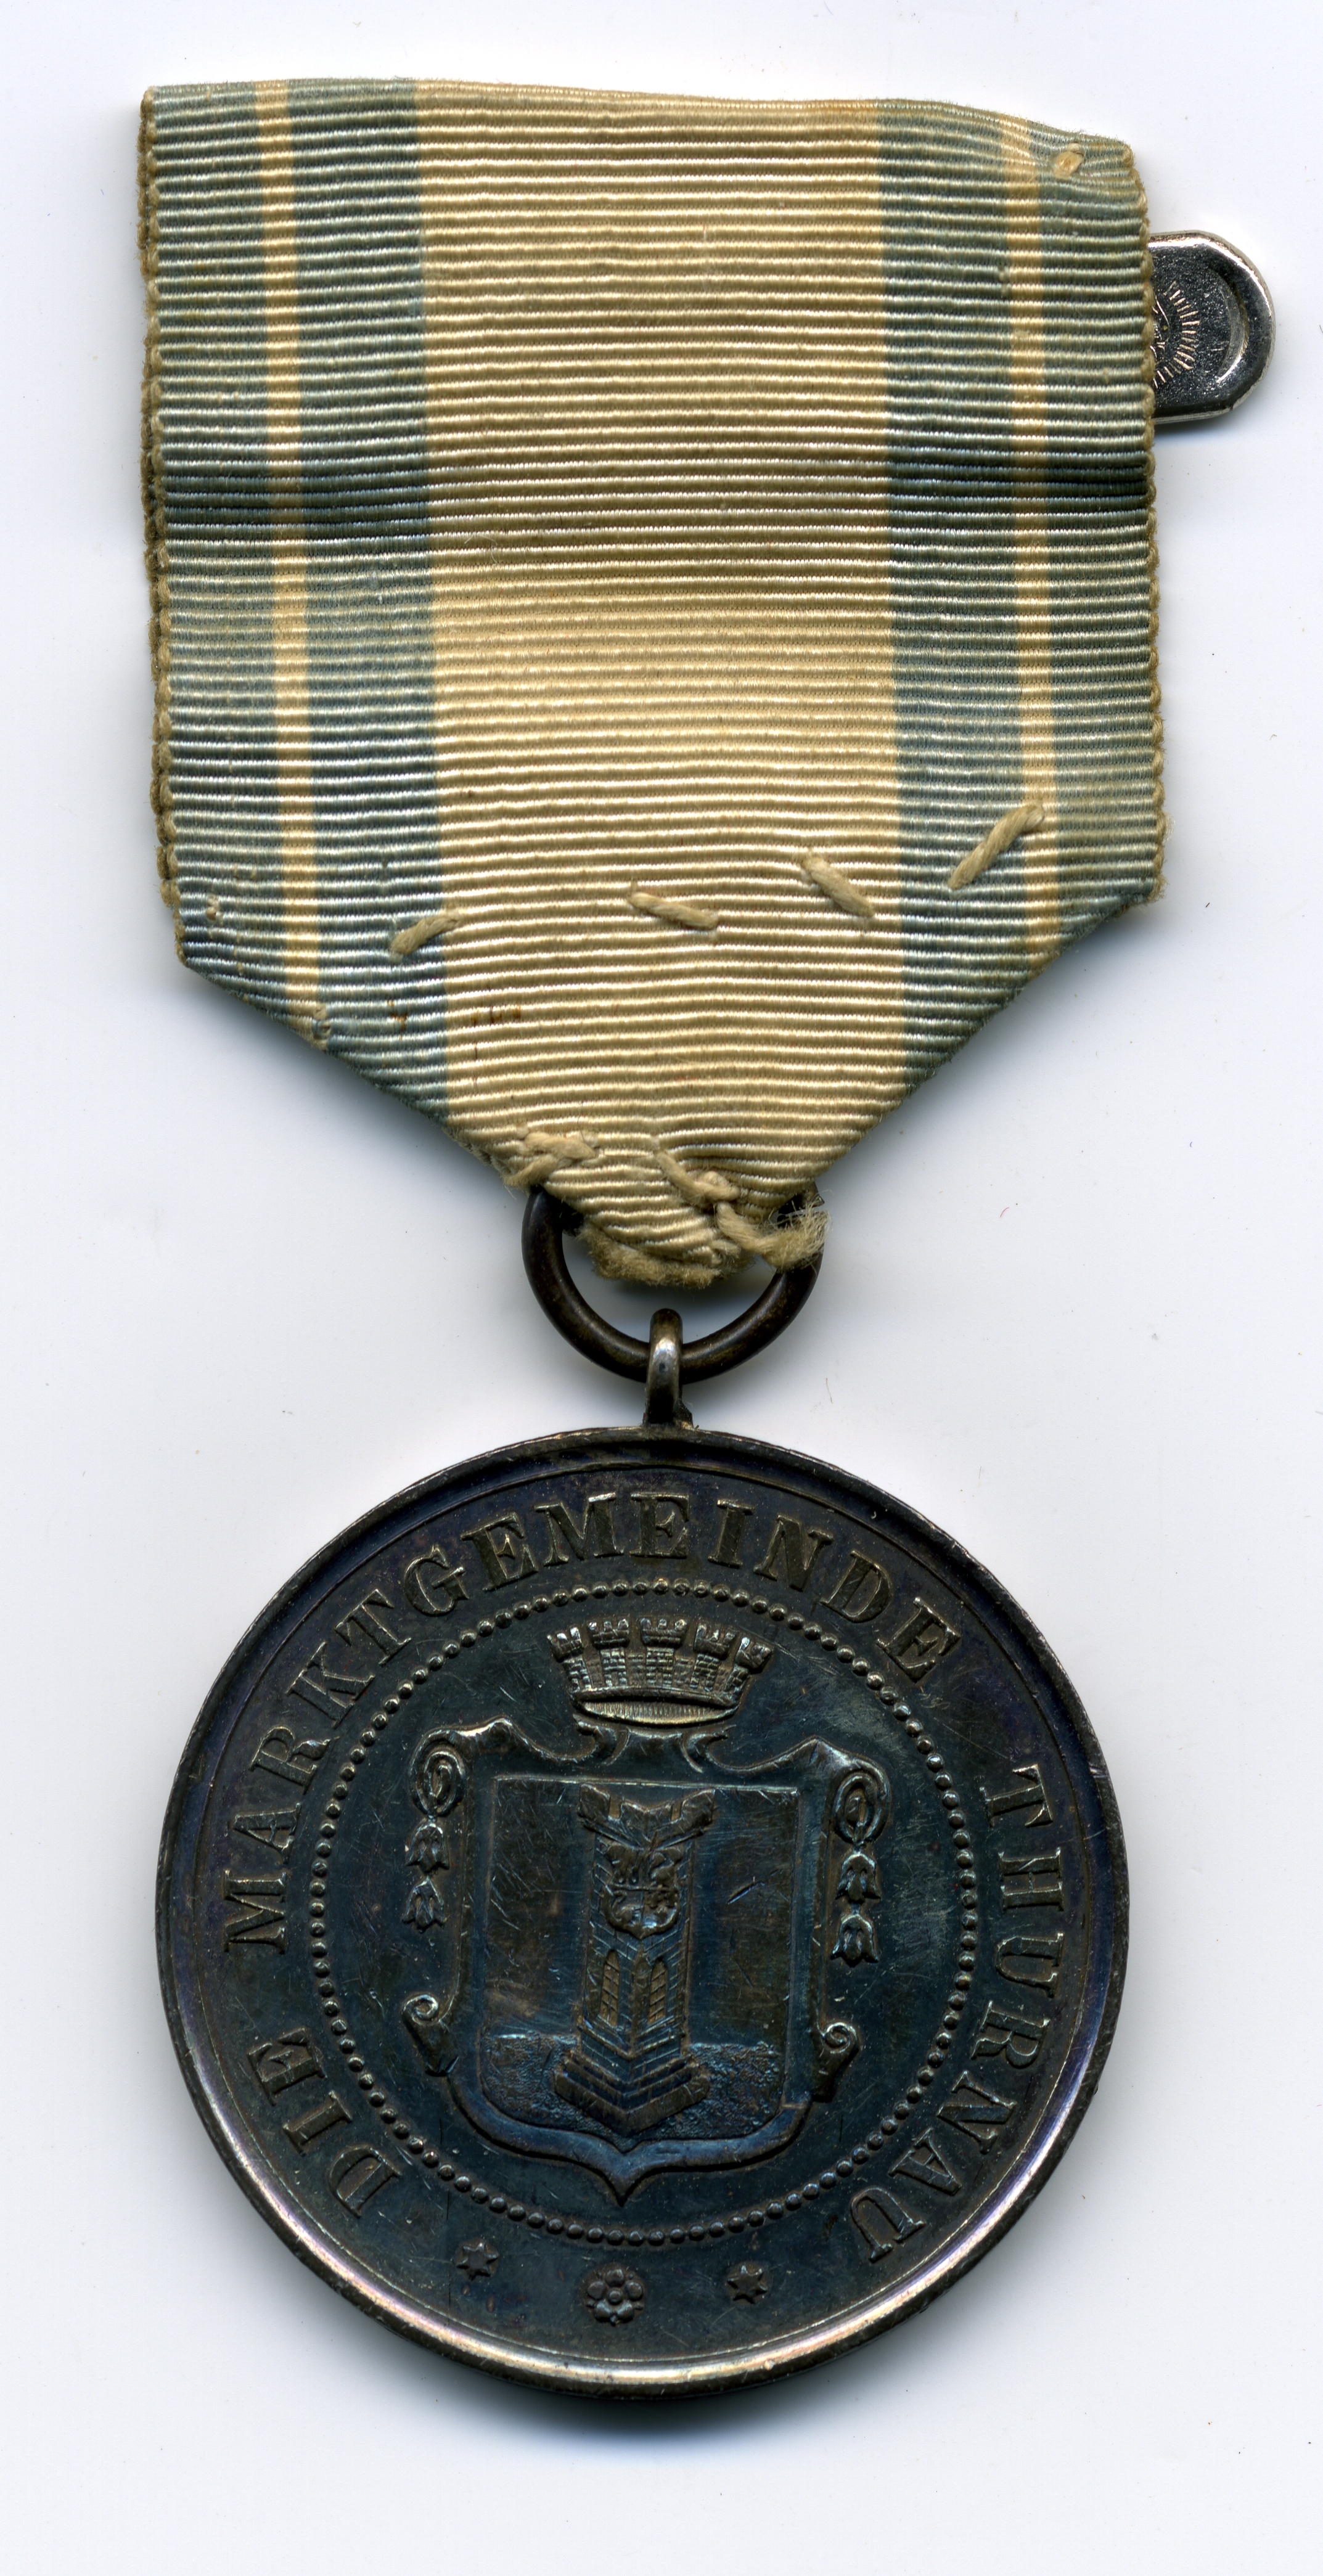 Medal 1895 to the war of 1870/71